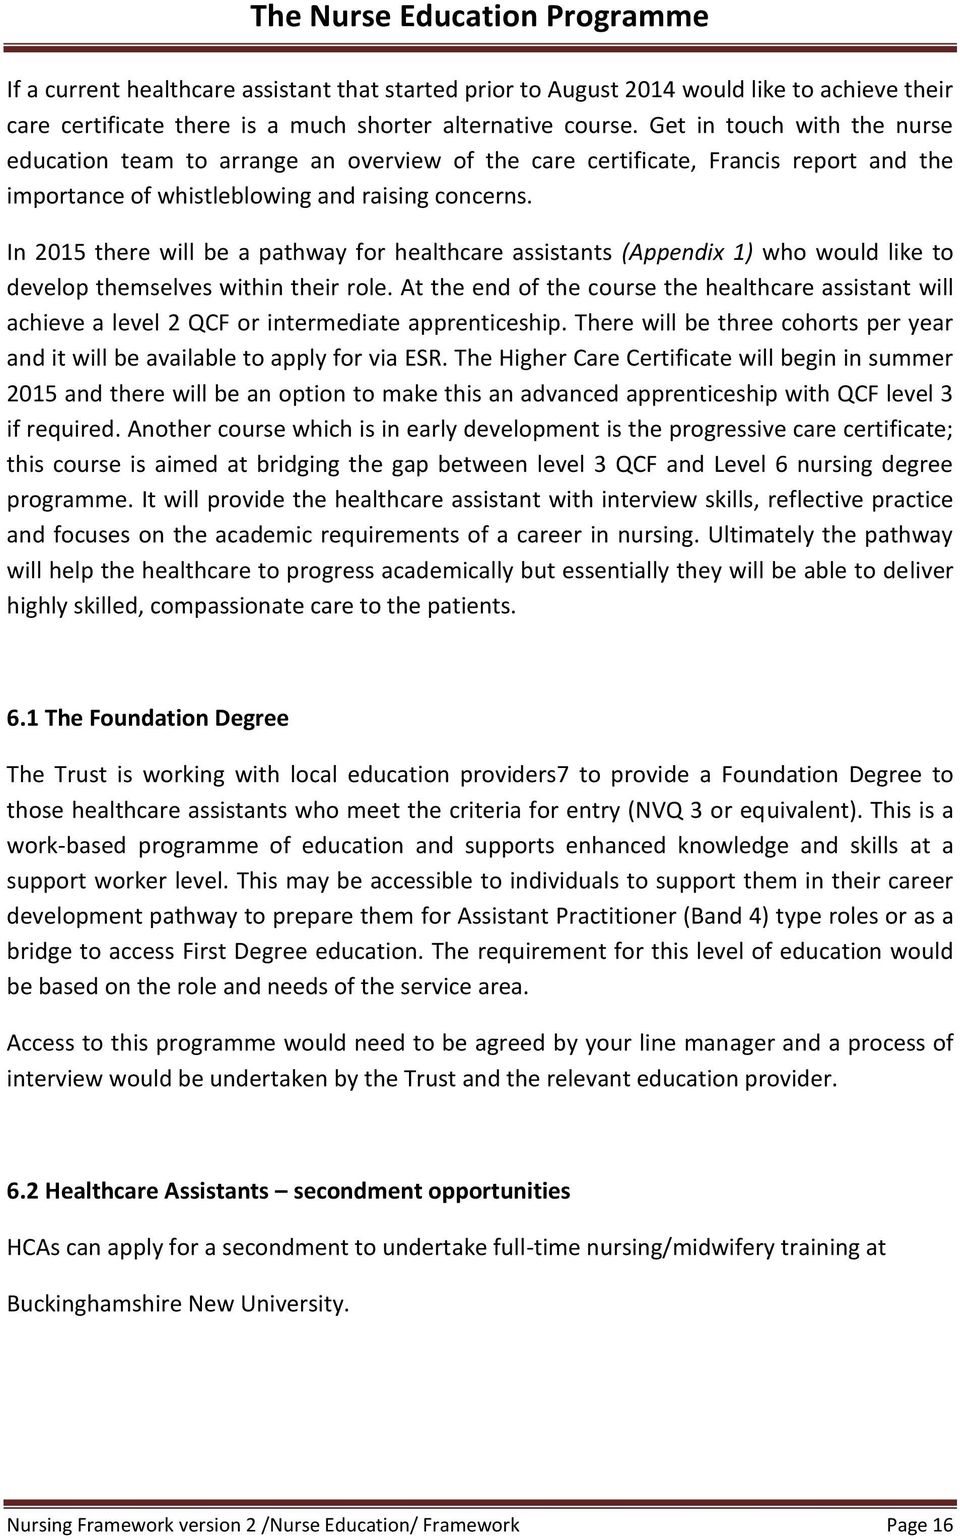 In 2015 there will be a pathway for healthcare assistants (Appendix 1) who would like to develop themselves within their role.